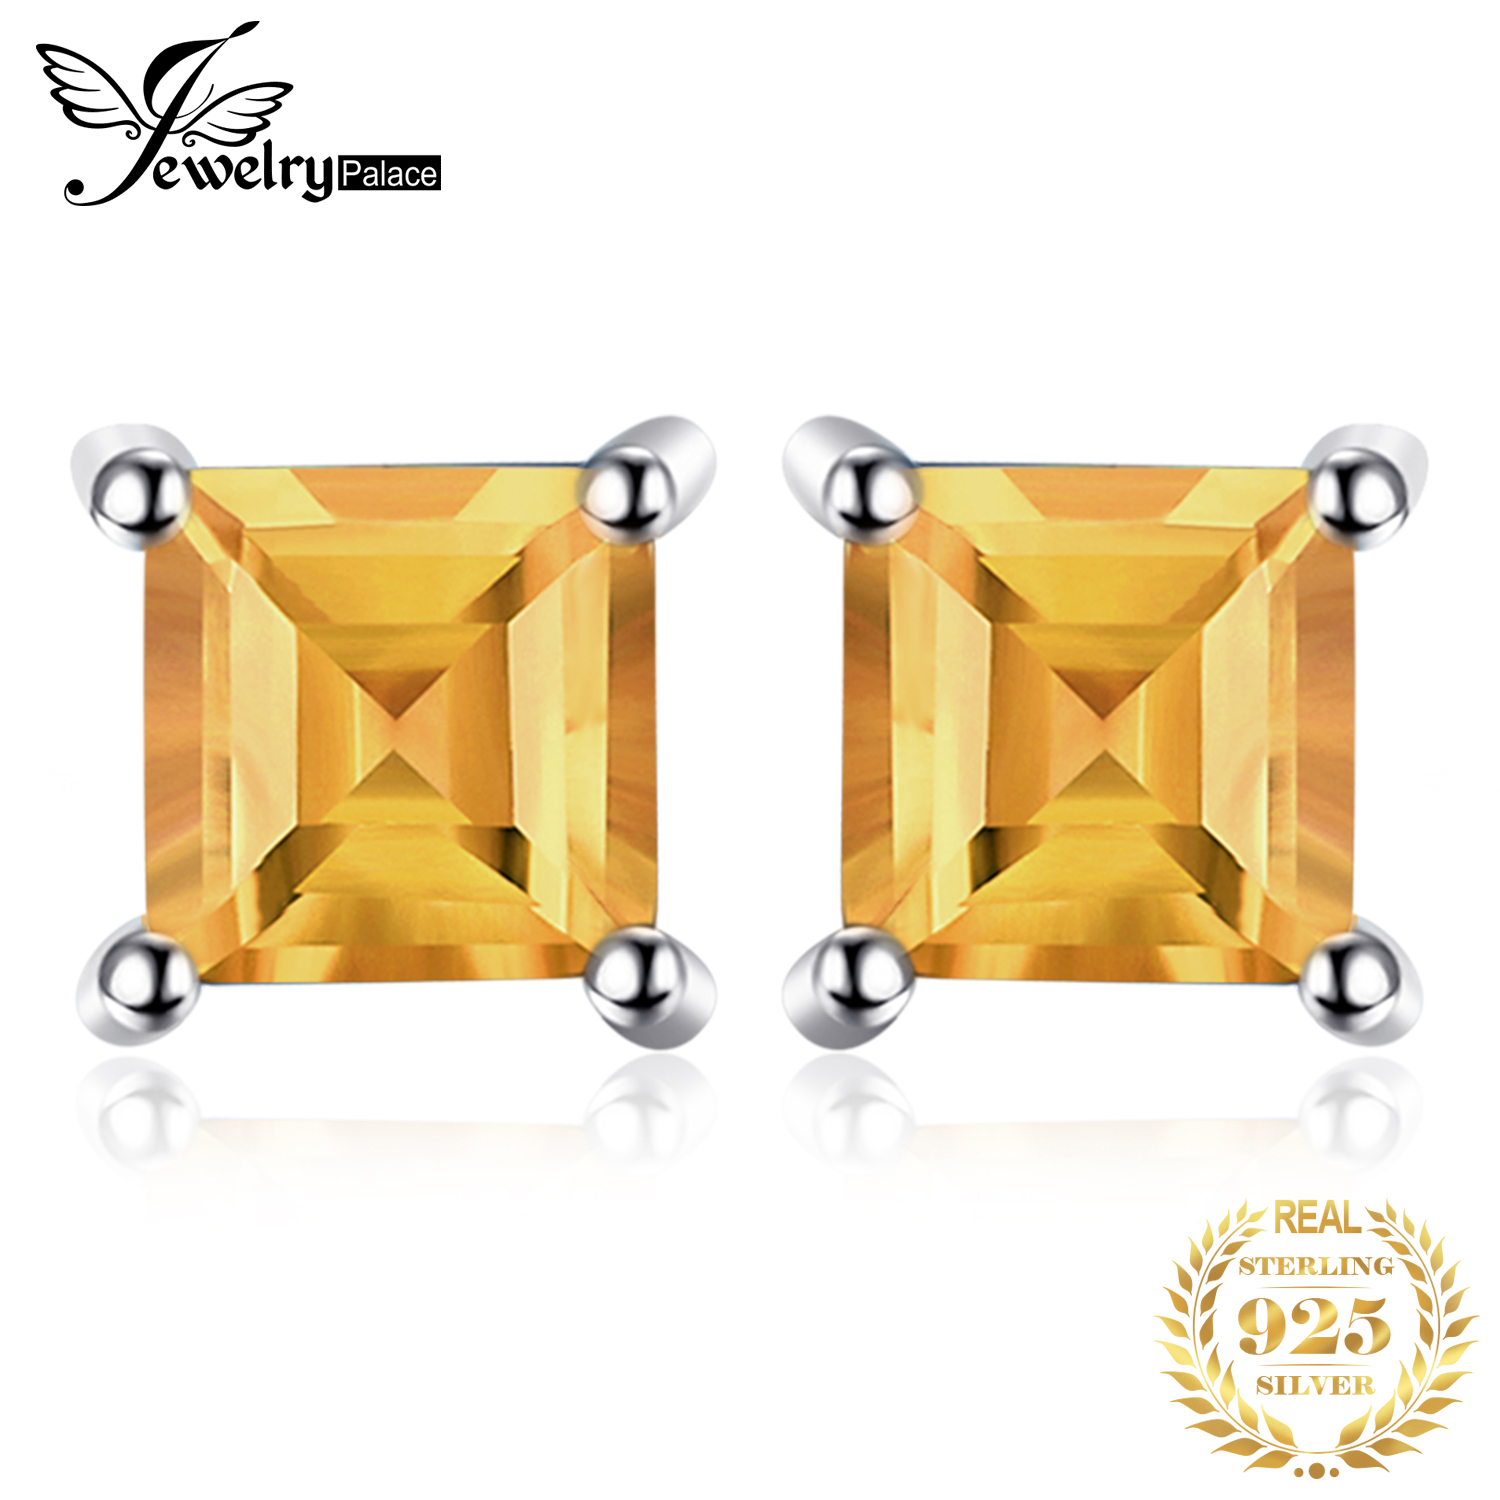 JewelryPalace Square Natural Citrine Stud Earrings 925 Sterling Silver Earrings For Women Korean Earings Fashion Jewelry 2020